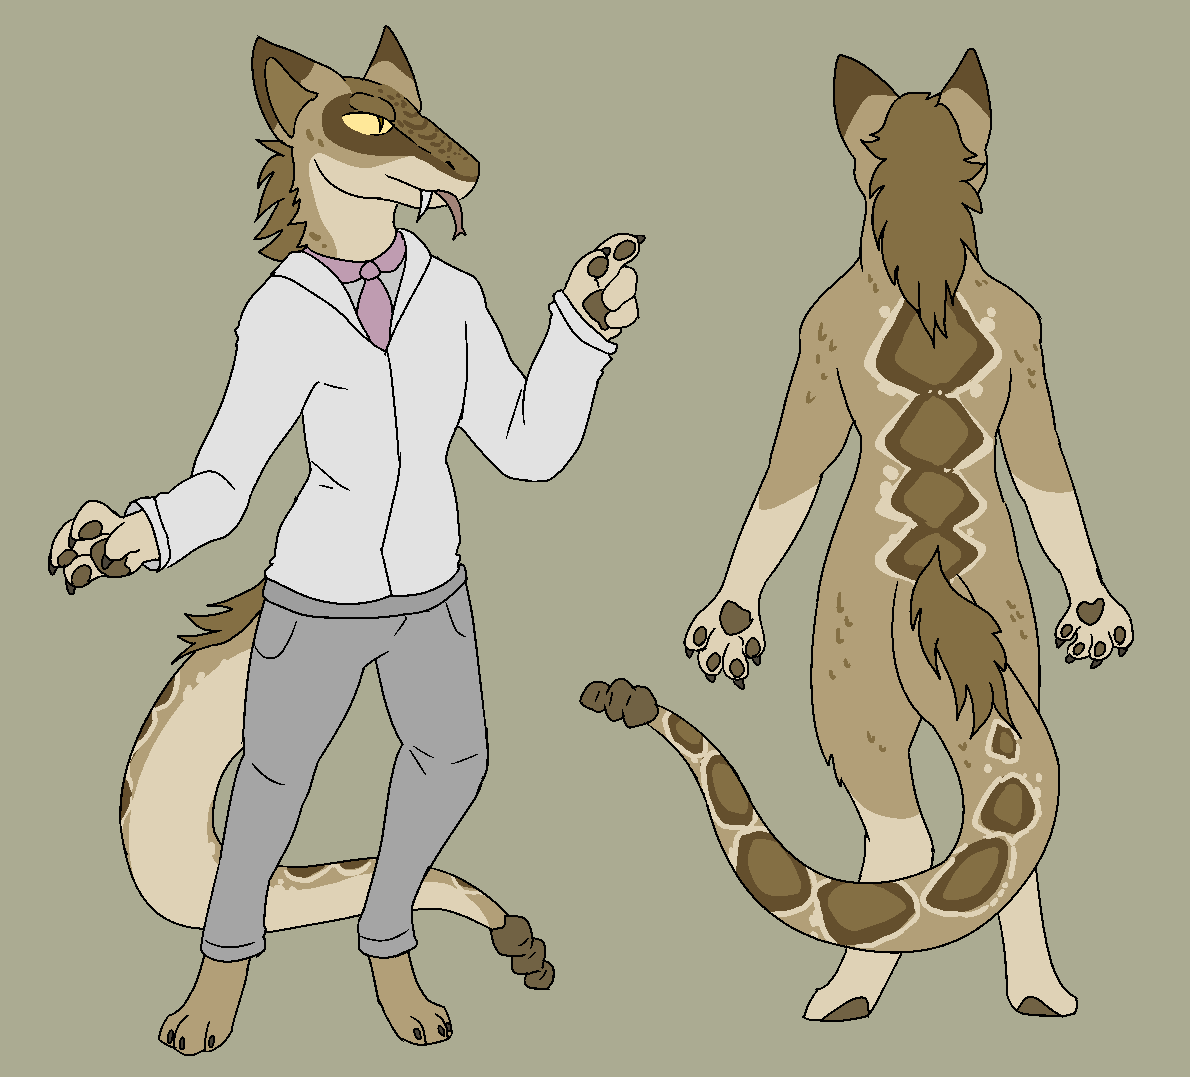 After lurking in the fandom for quite some time, I figured that it might be good for me to jump in and start meeting some new people. So, I came up with an idea for a fursona and commissioned some art of him. Here is his reference sheet made by @TheRoguez.